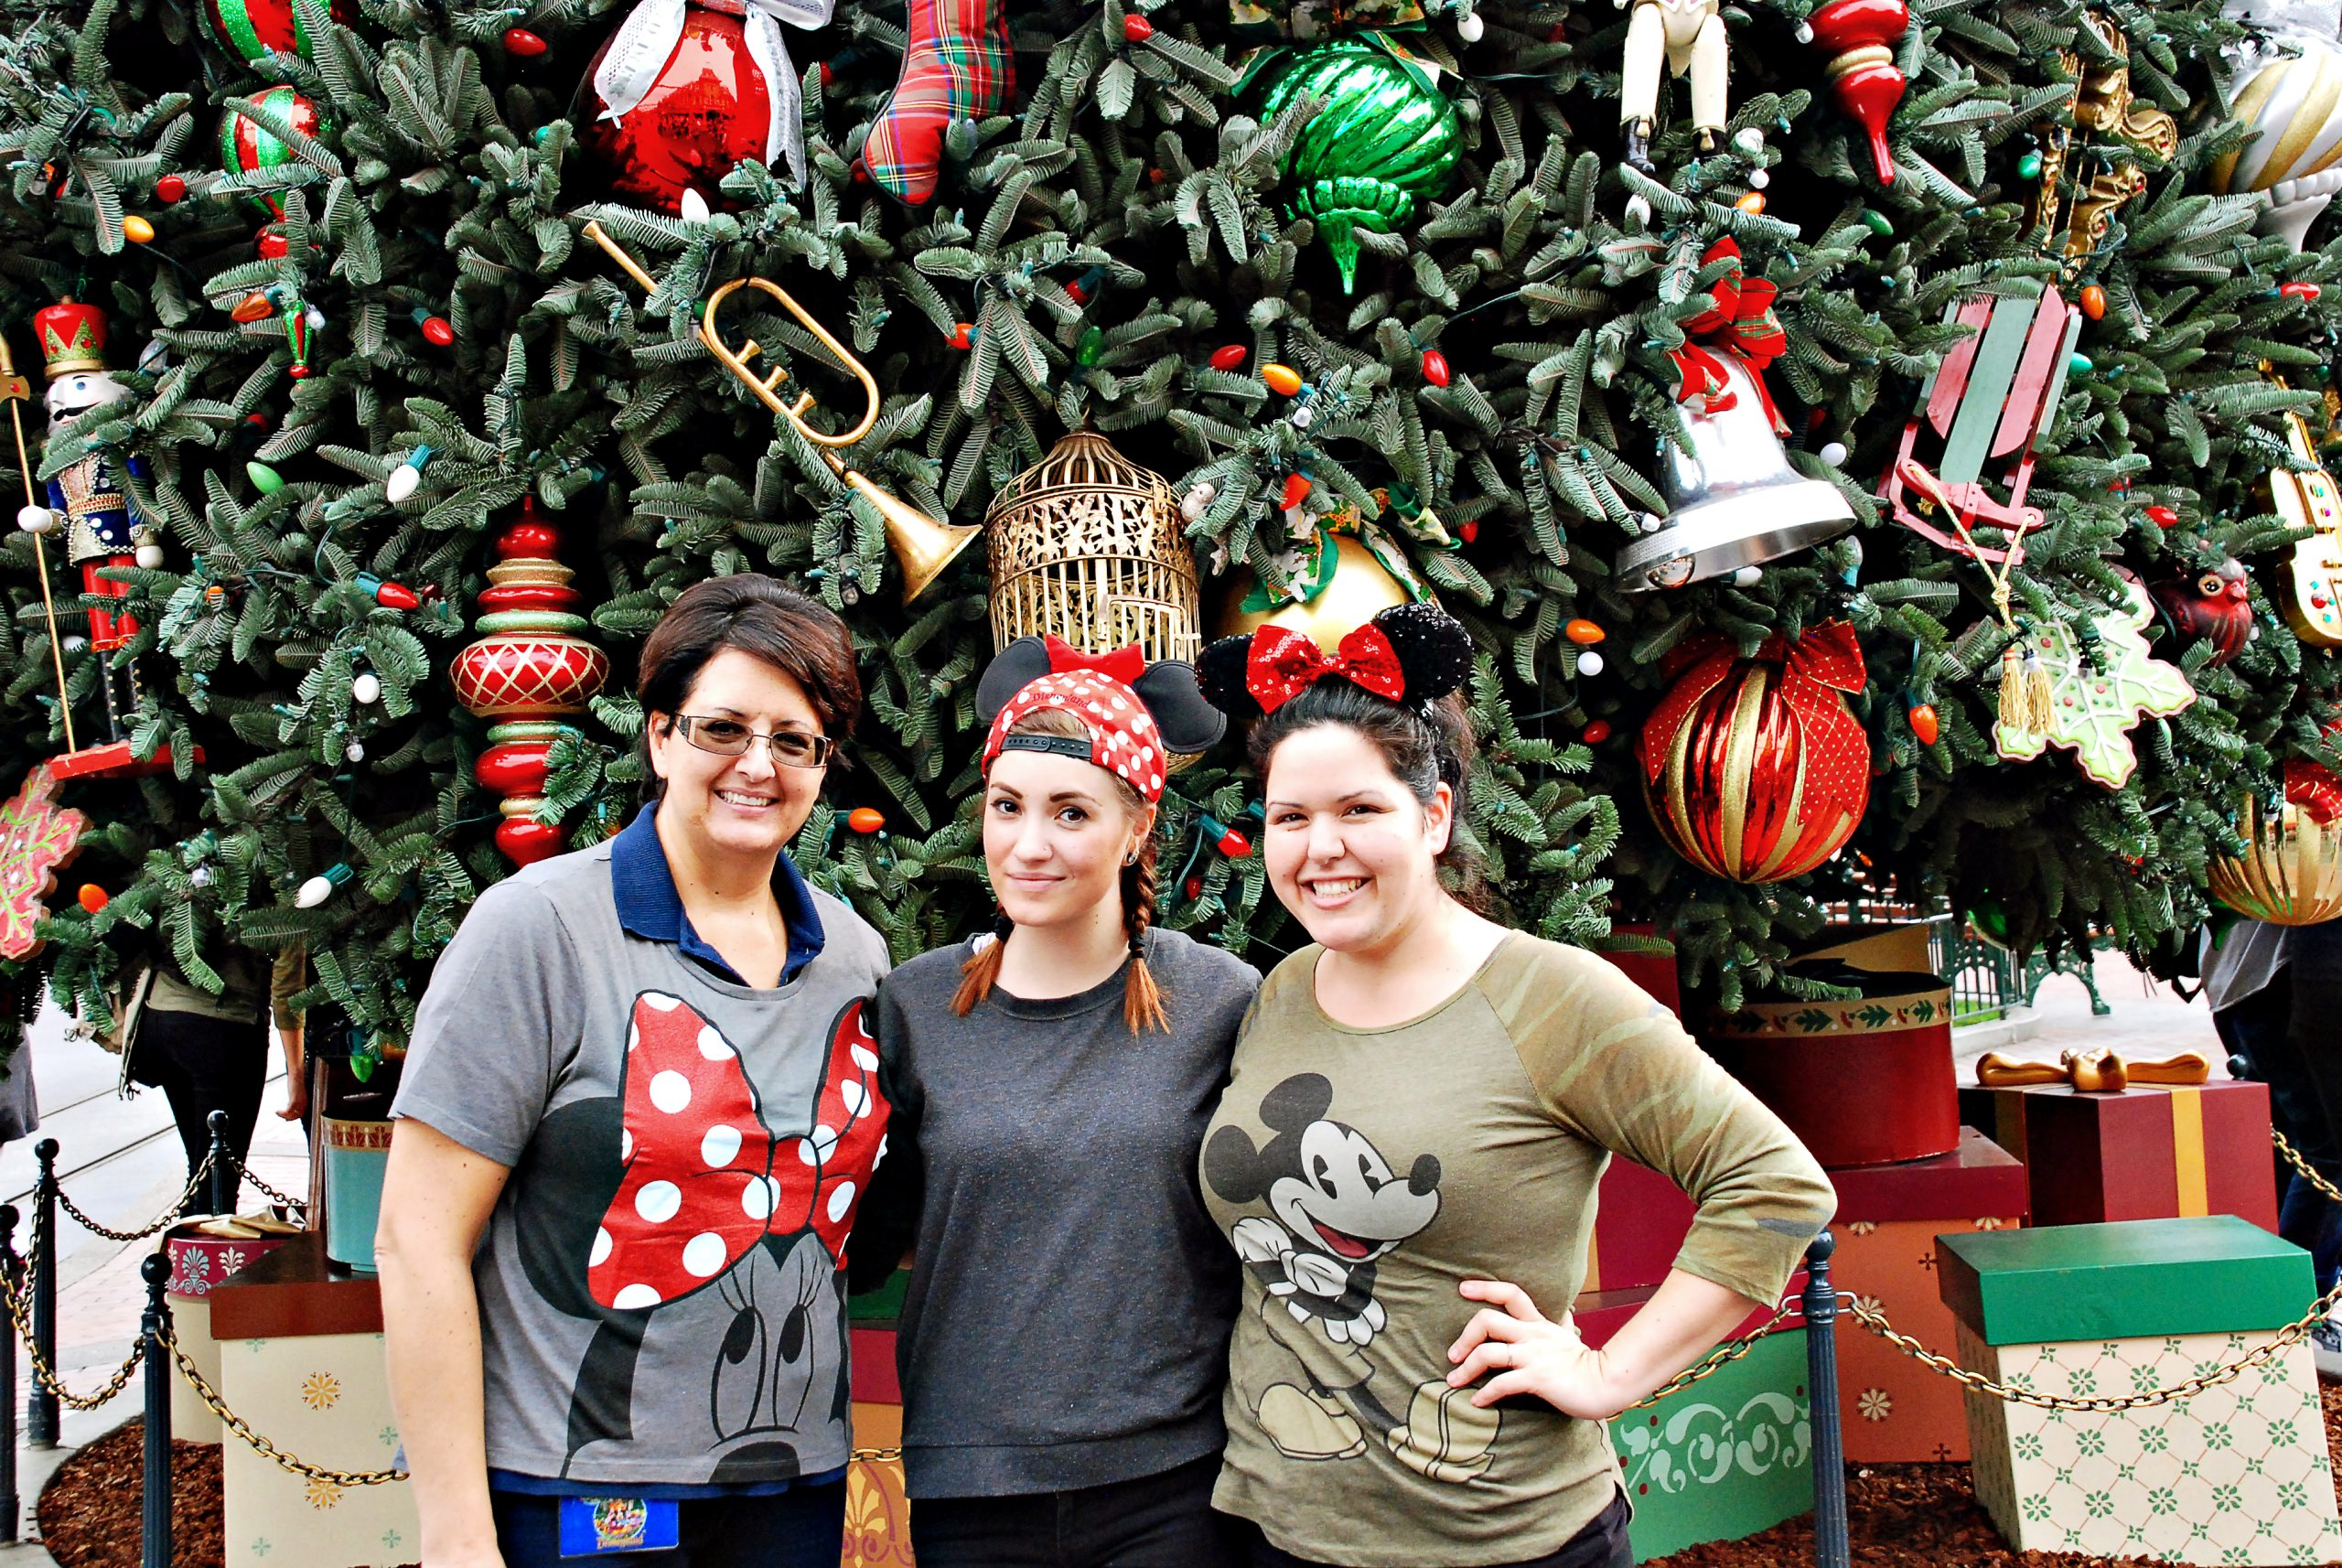 Mom and adult daughters standing in front of the Christmas tree on Main Street at Disneyland.